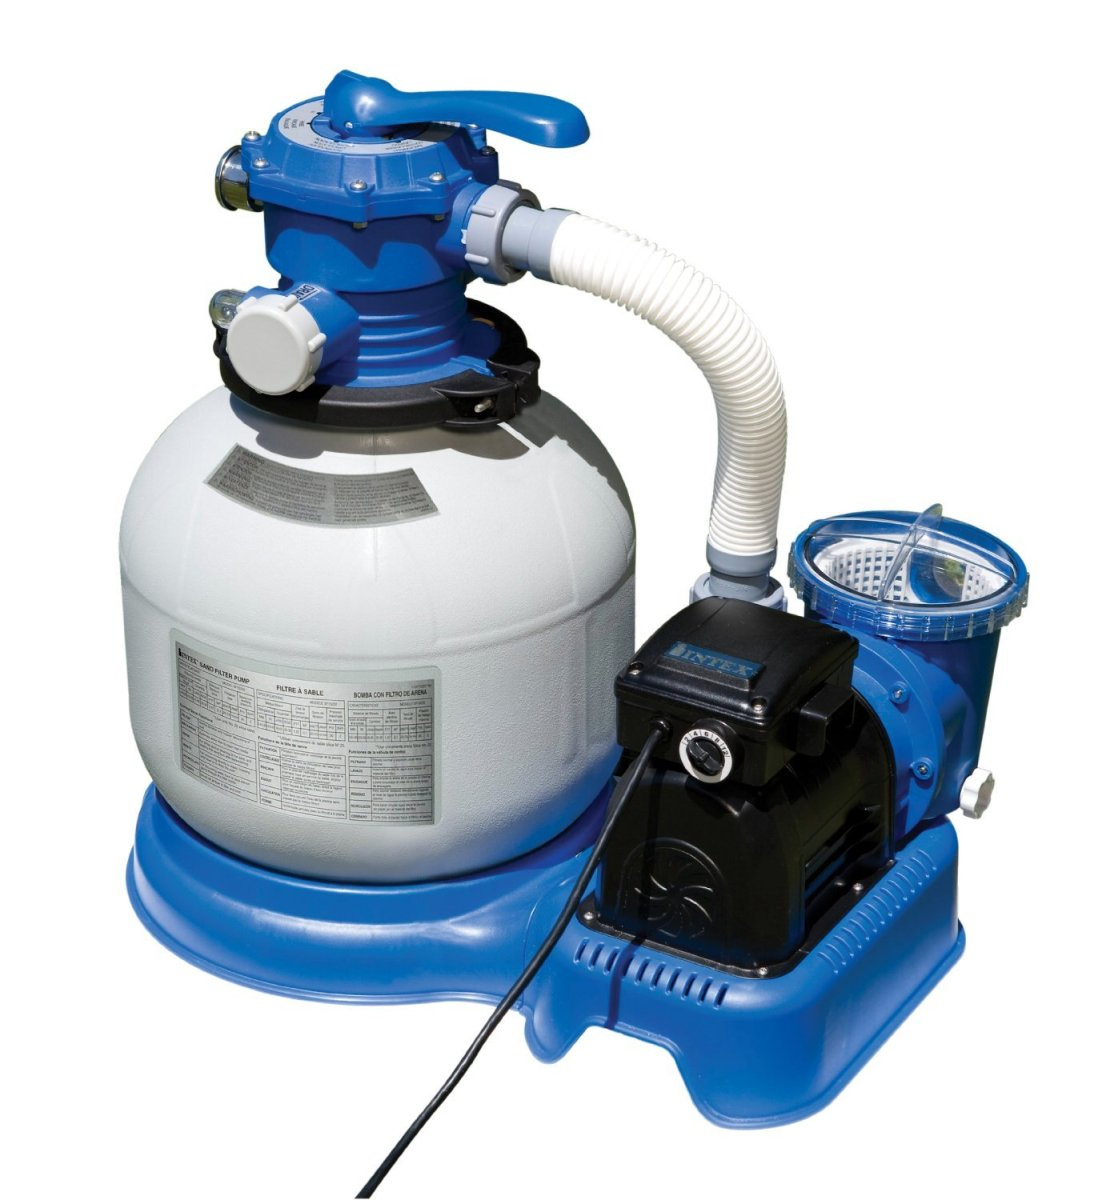 Pool Pumpe Und Filter Intex Above Ground Pool Pumps Best Above Ground Pools